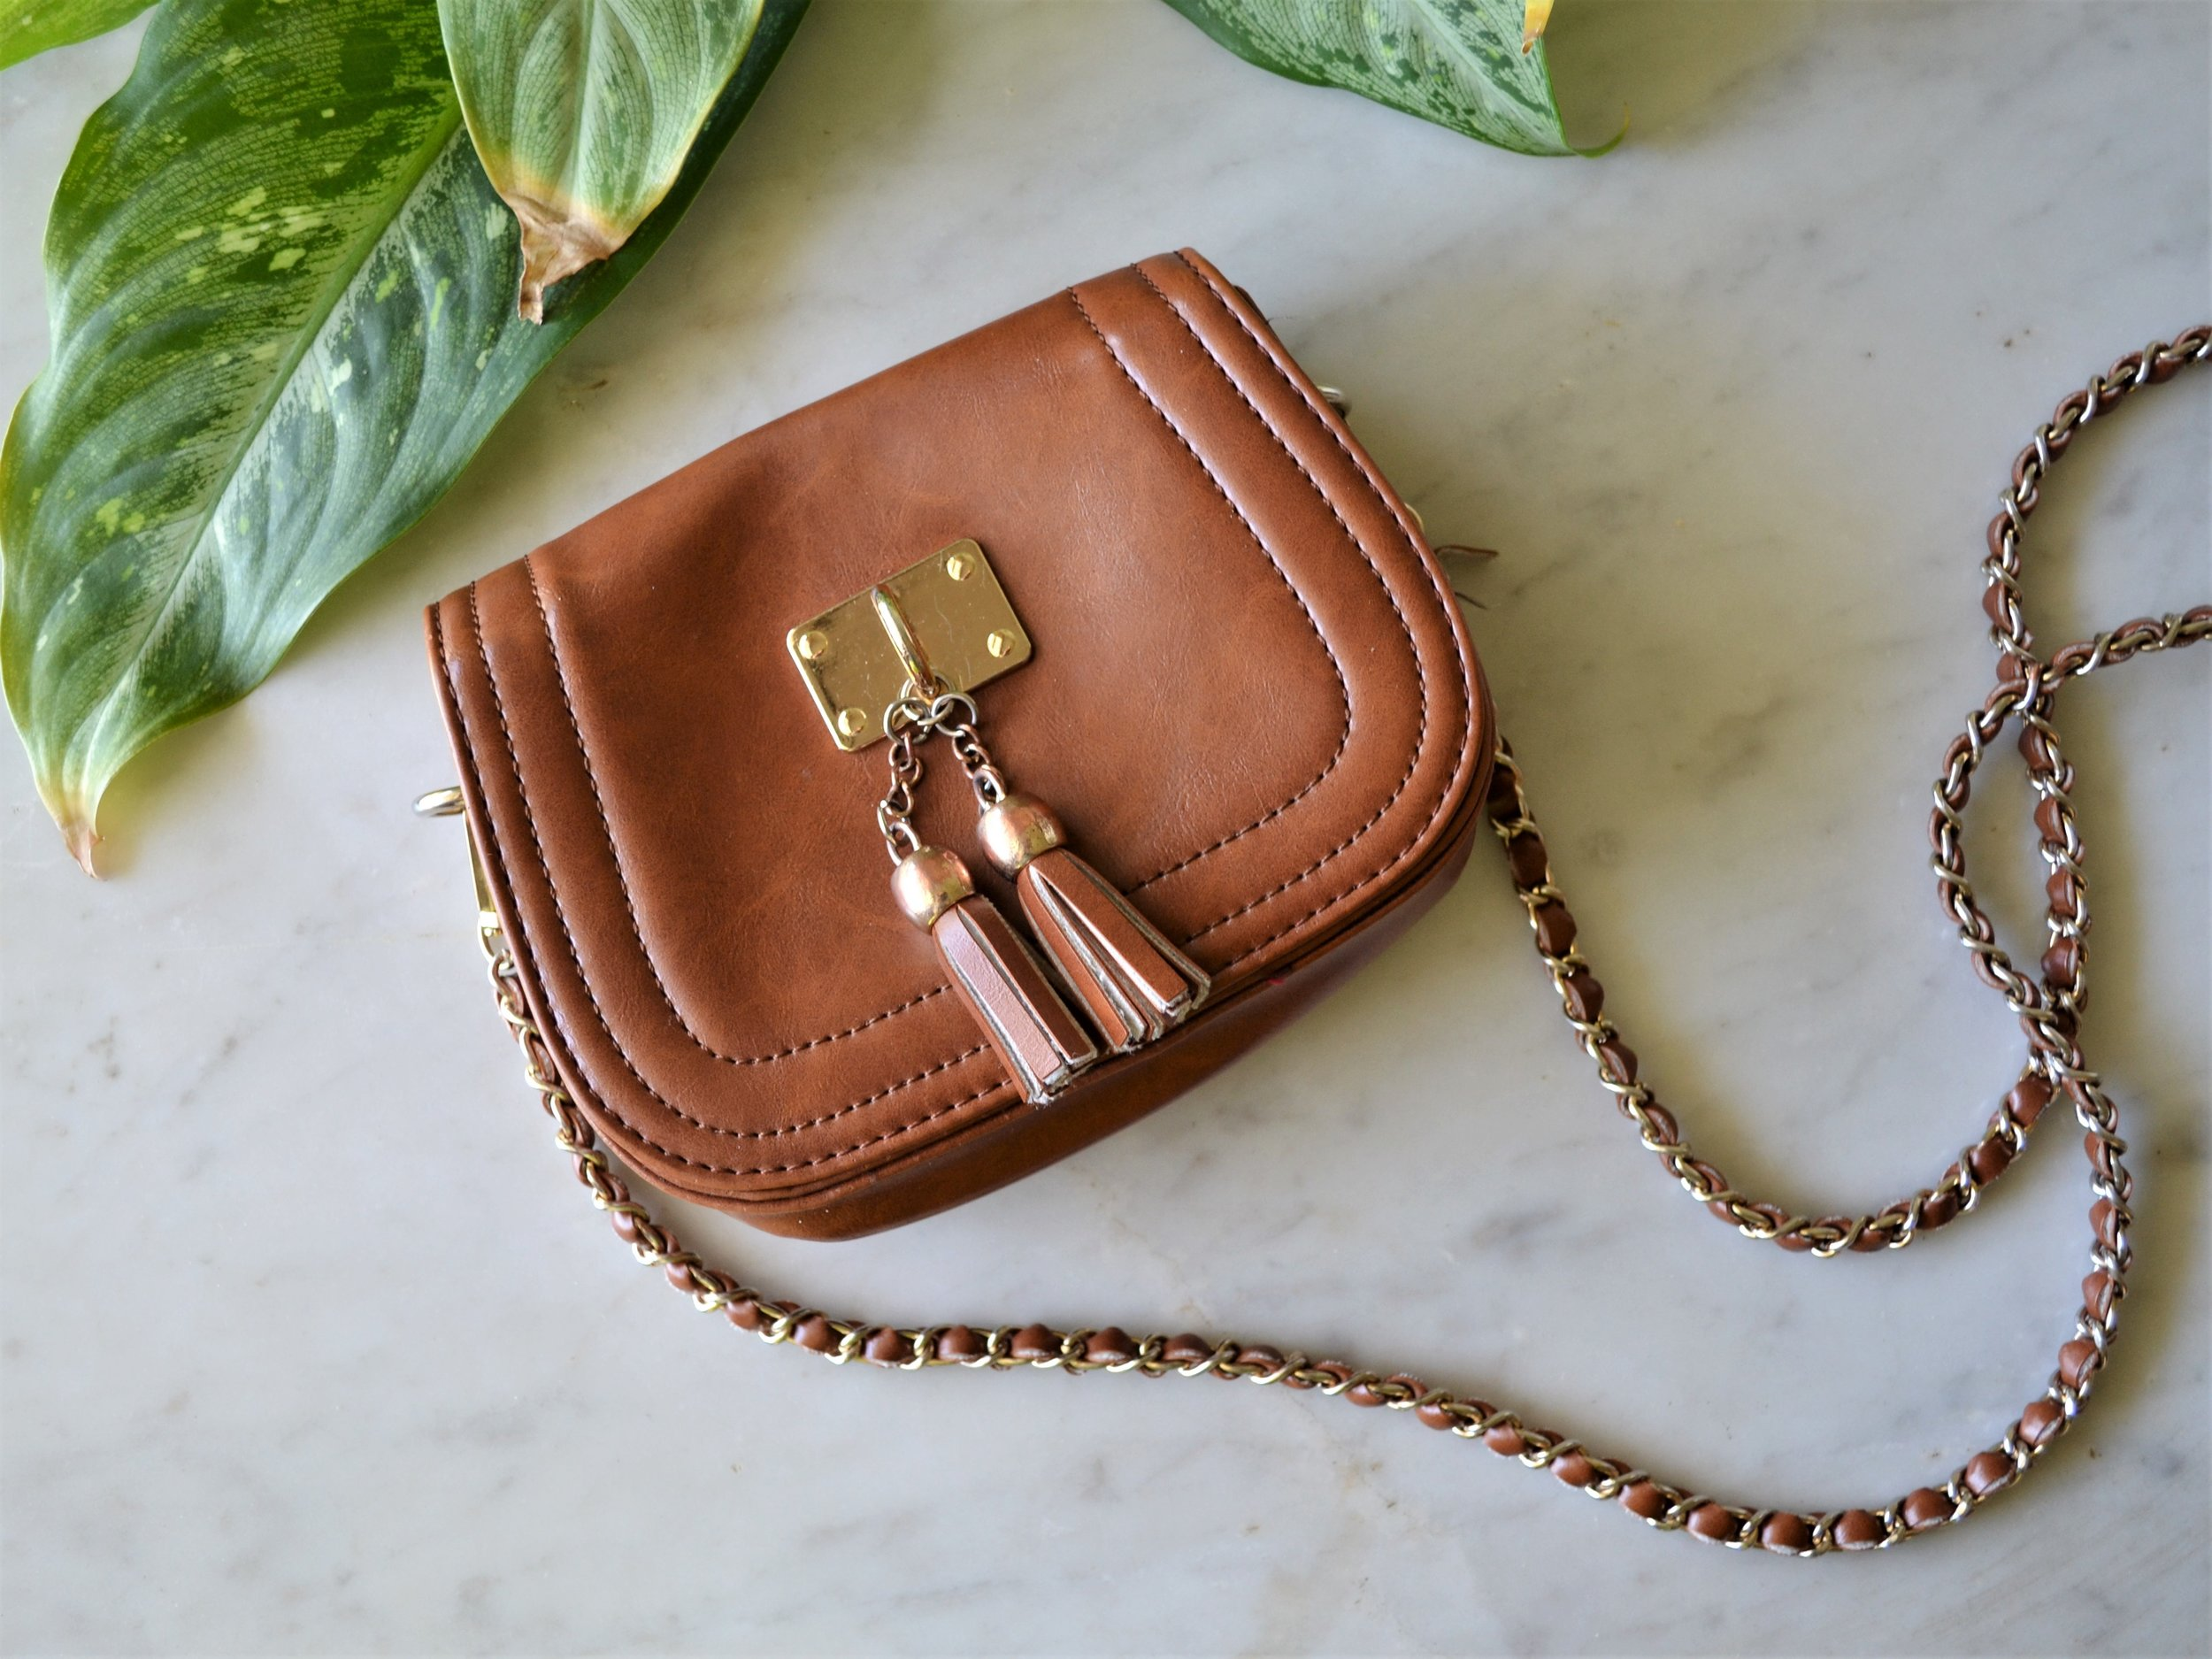 Small Purse - Having a small purse or tote is key when traveling light. It allows you to move freely throughout your day and (literally) not be weighed down. All you often need is: cash, credit card, drivers license, lipstick, phone, and a pen; and your good to go!